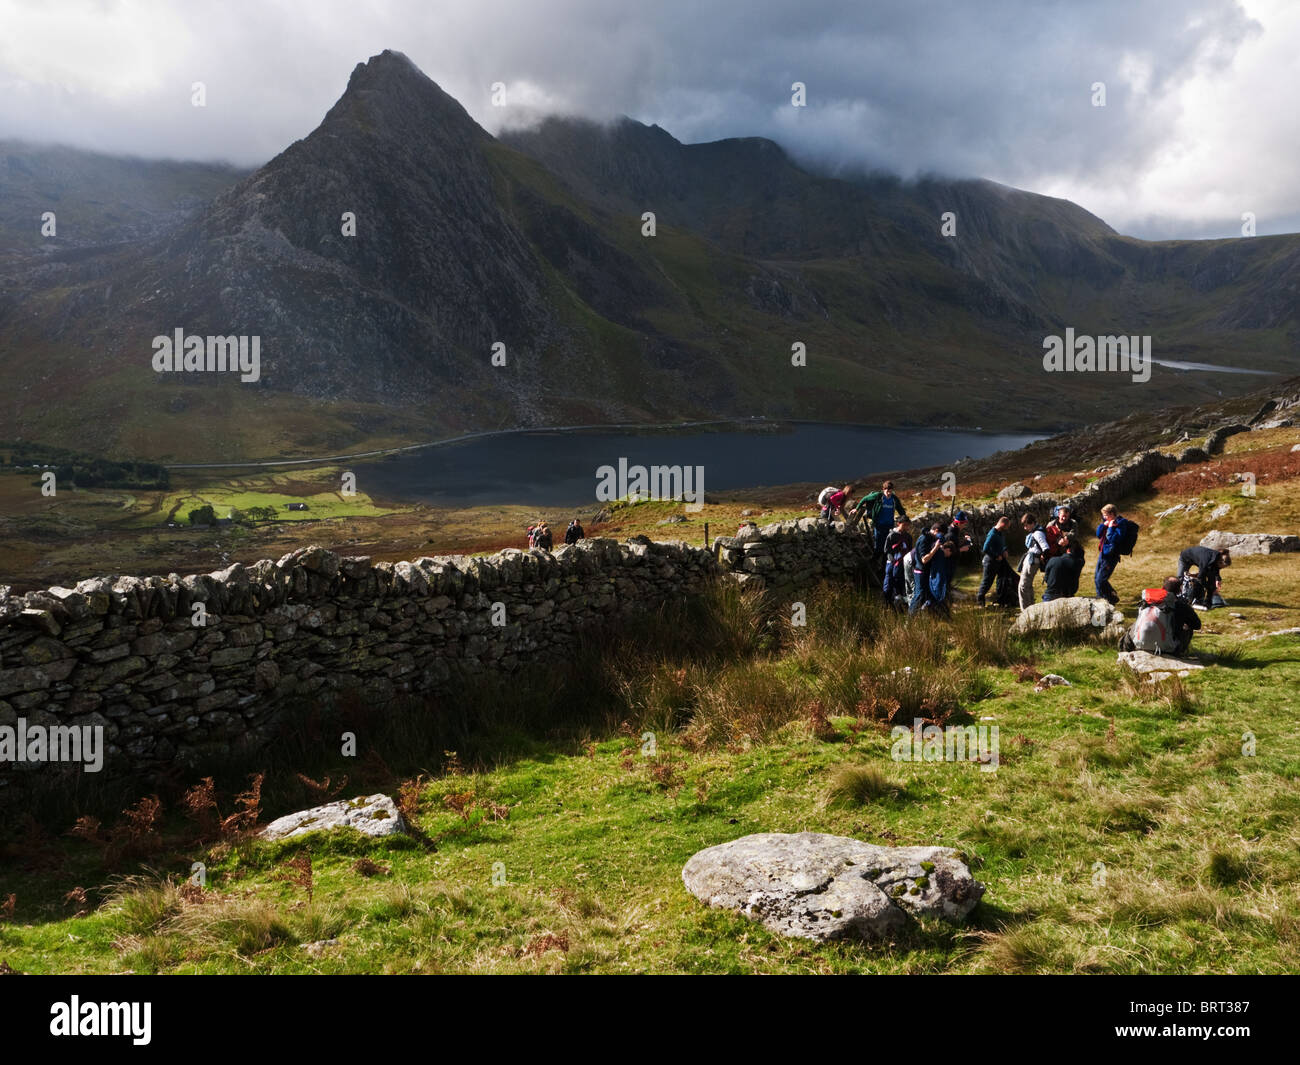 Snowdonia: Tryfan and the Glyders rise over Llyn Ogwen, while a group of walkers rest on the flanks of Pen yr Ole - Stock Image